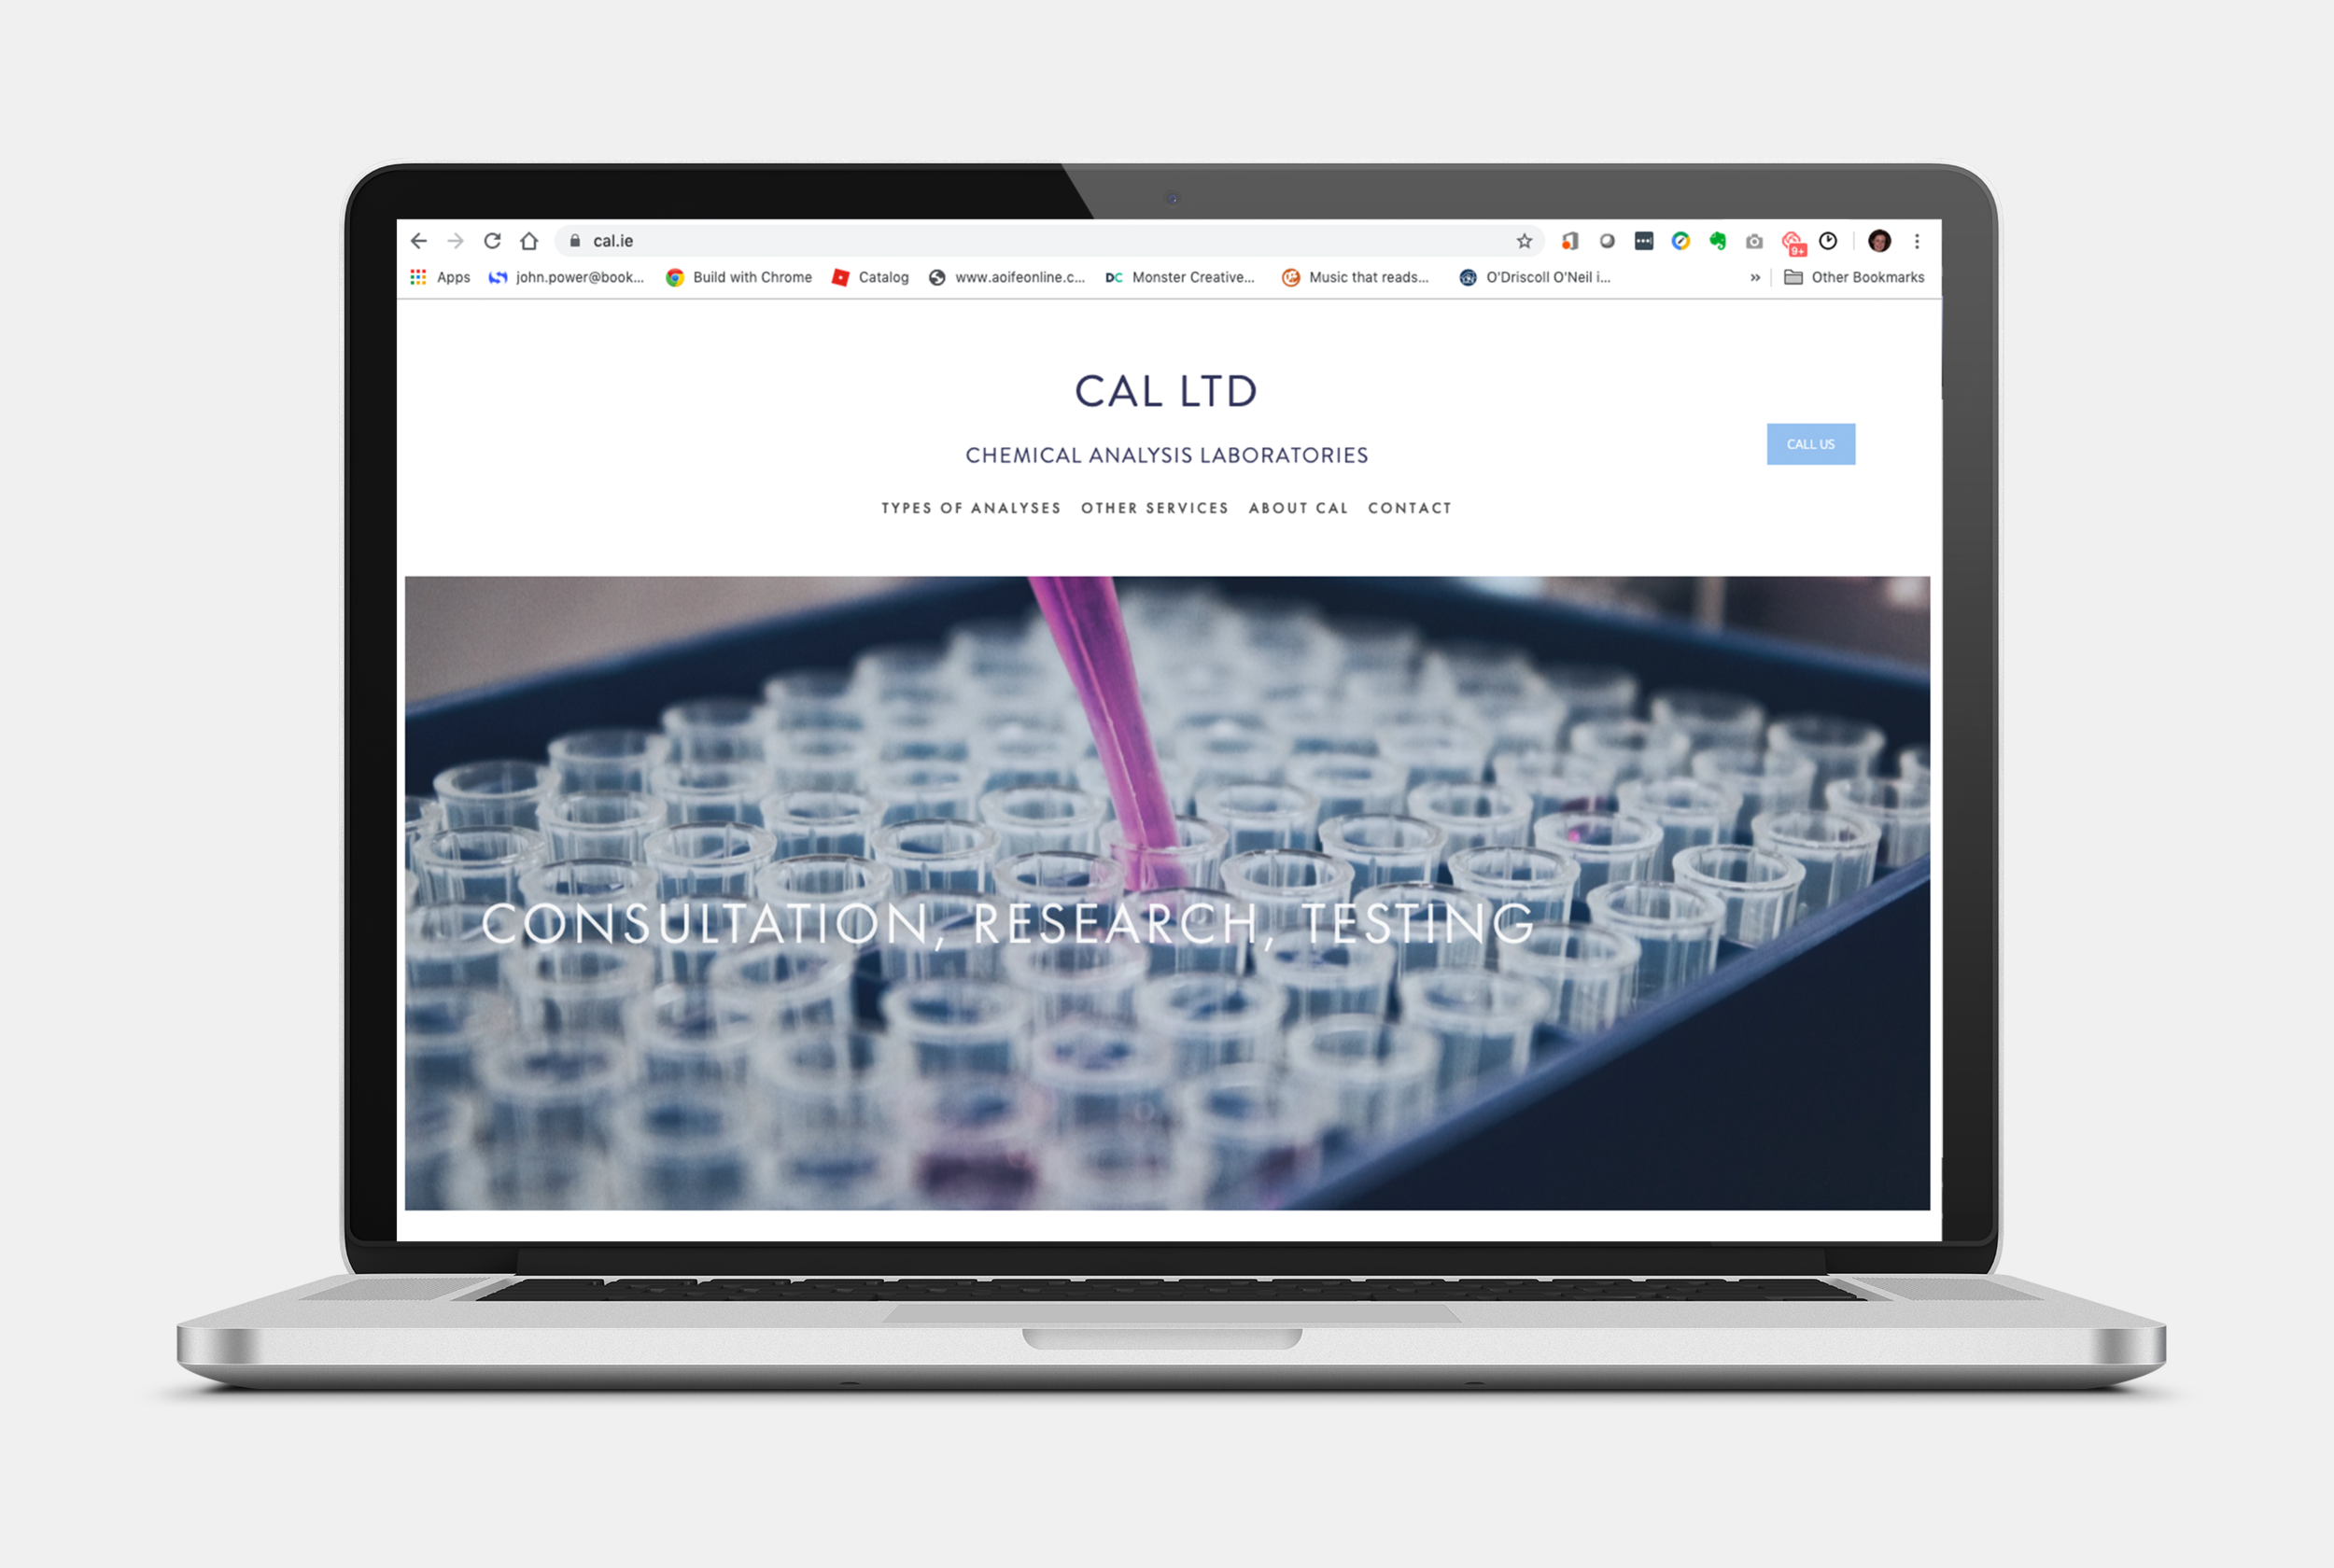 CAL is one of Ireland's leading chemical analyses laboratories, based in Sandycove, Co Dublin. They contacted me because they had a very old and dated website that needed a design and UX makeover and which they can now easily edit themselves.